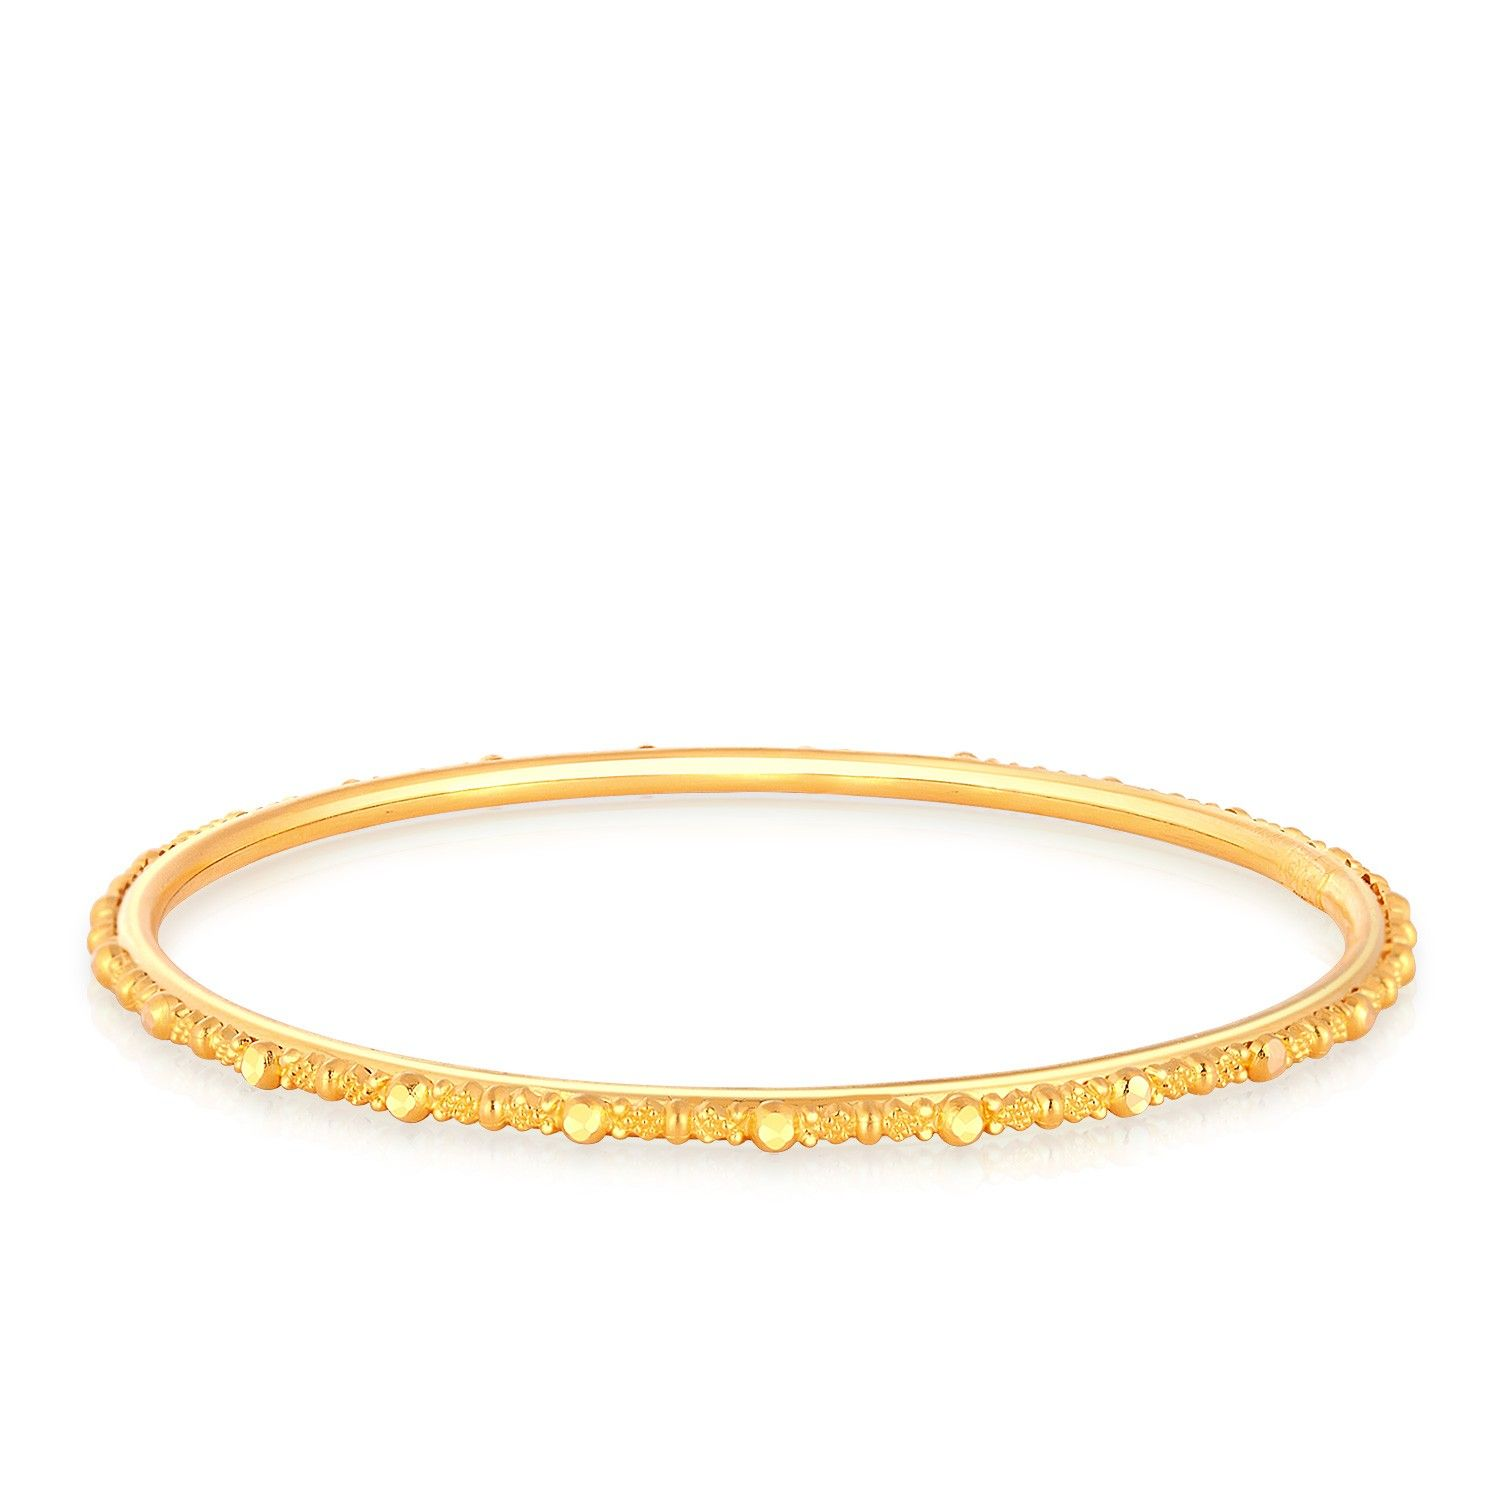 Malabar Gold | gold jewelry | Gold bangles, Gold bangles ...